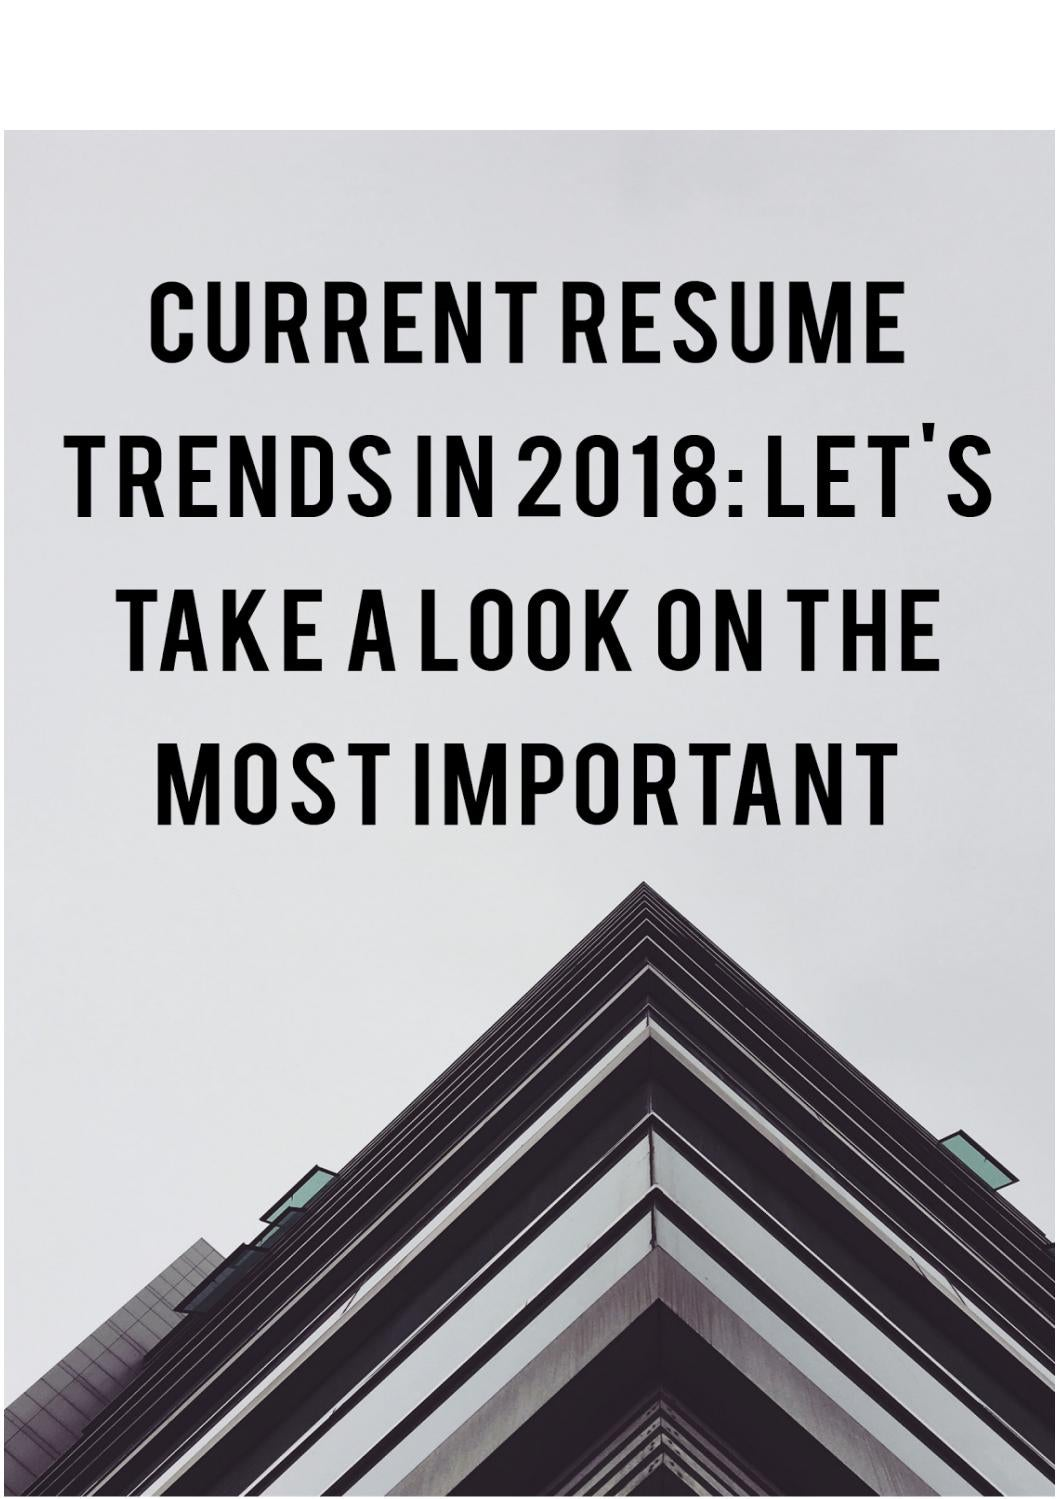 current resume trends in 2018  let u0026 39 s take a look on the